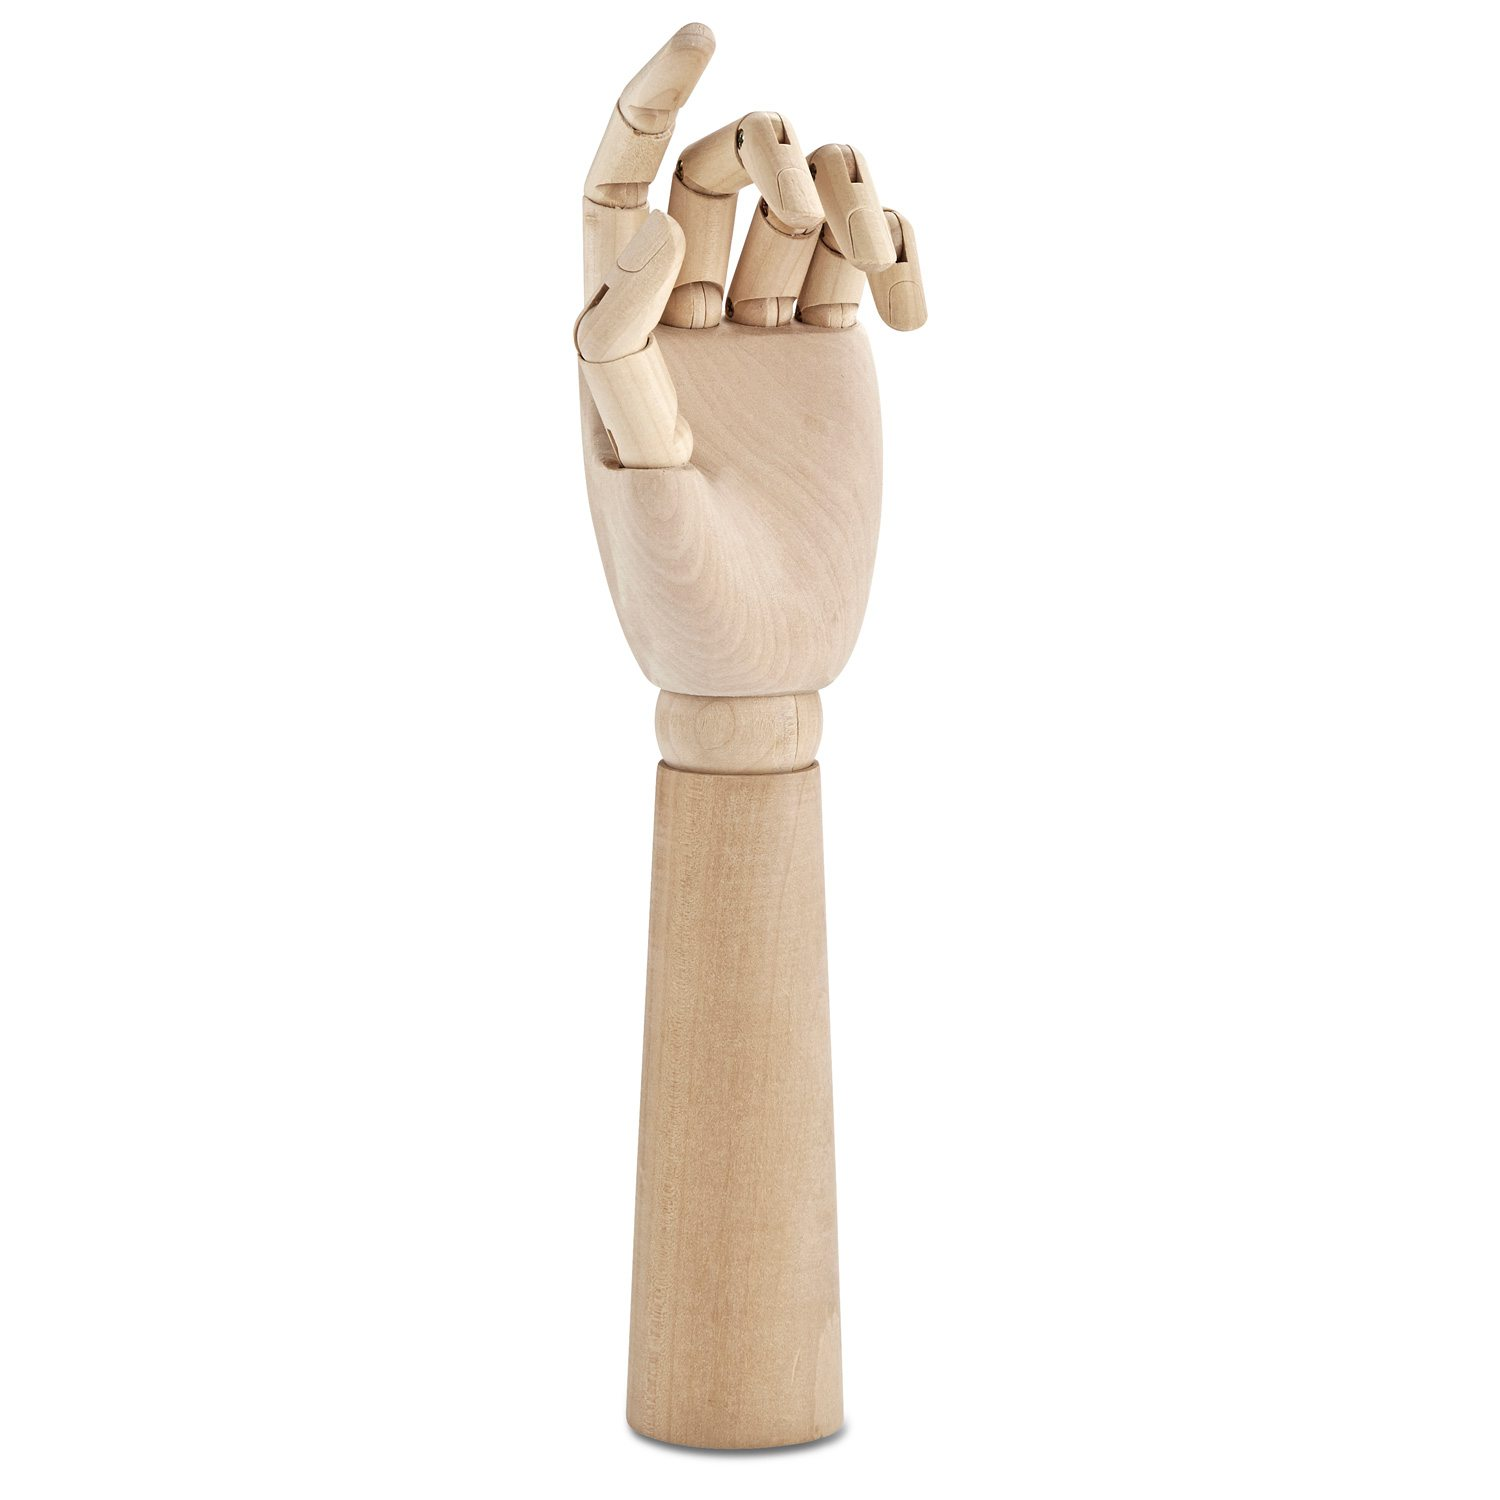 Wooden Hand Forearm, M